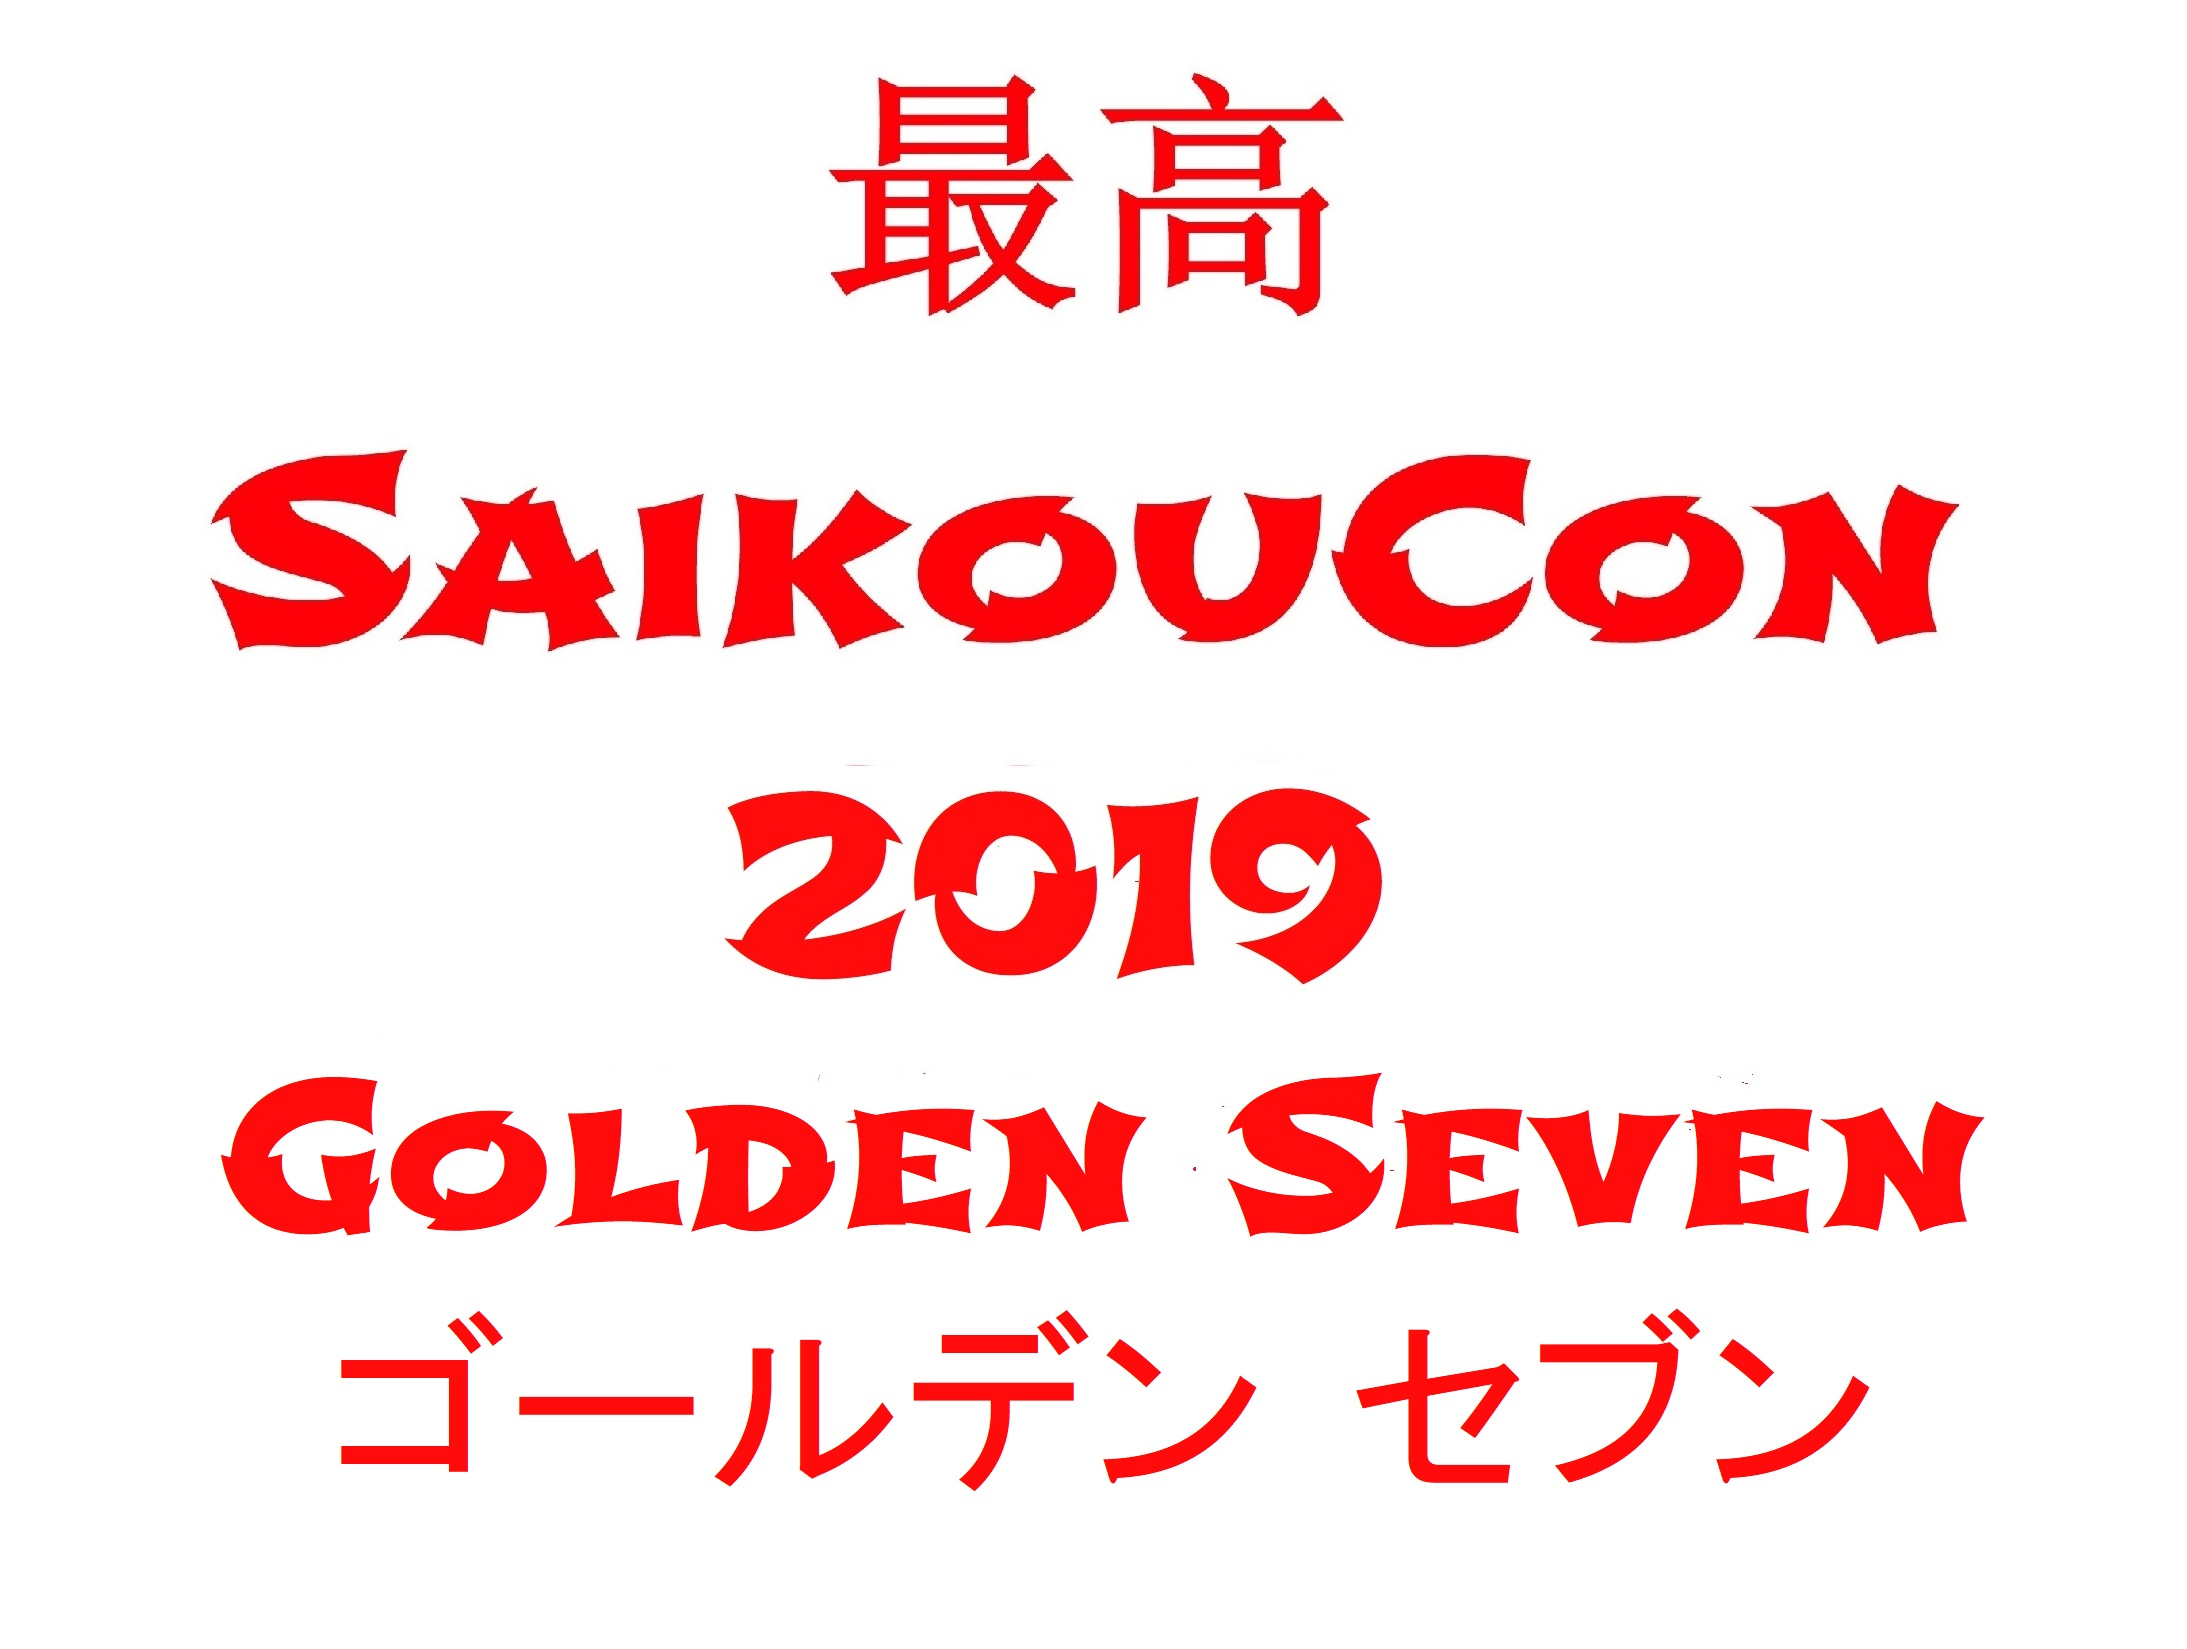 SaikouCon 2019 - Golden Seven